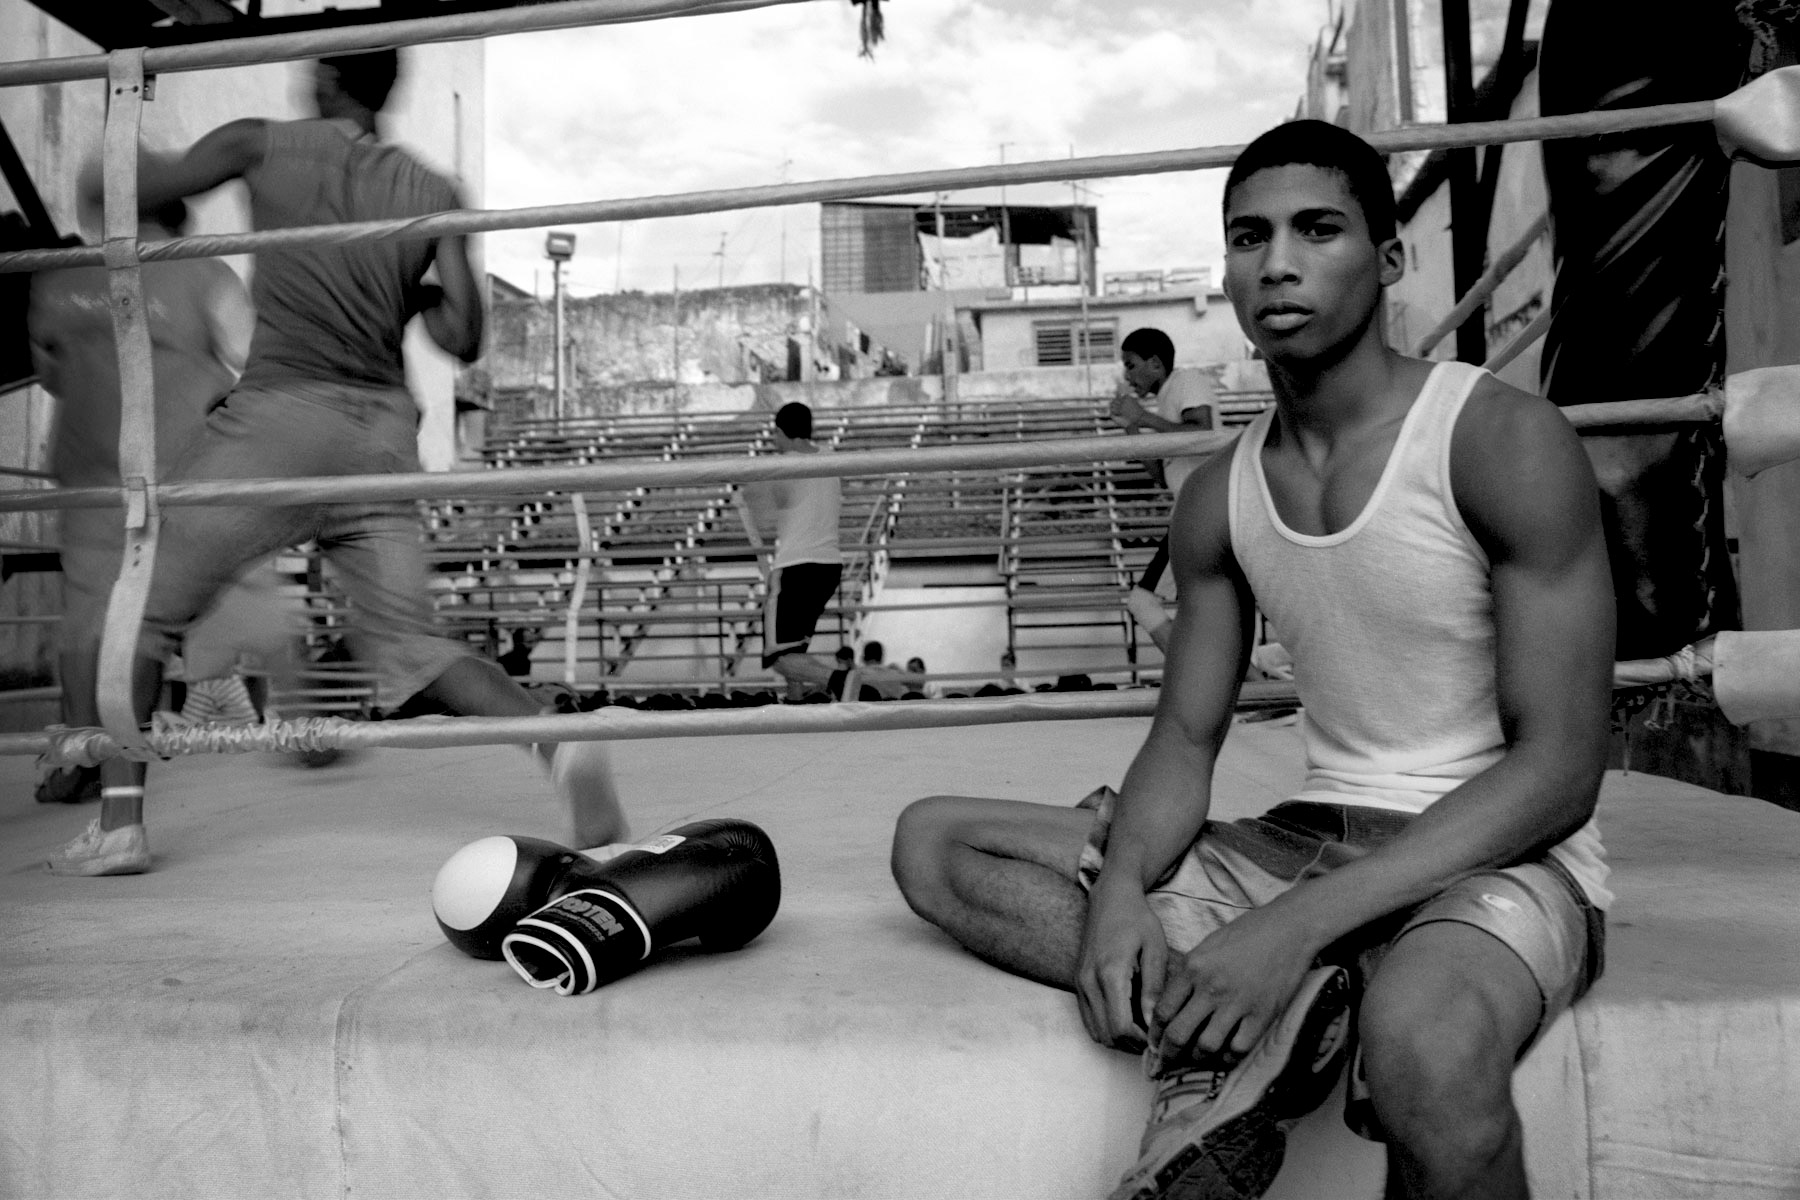 Photographs of Cuba by Scott Council